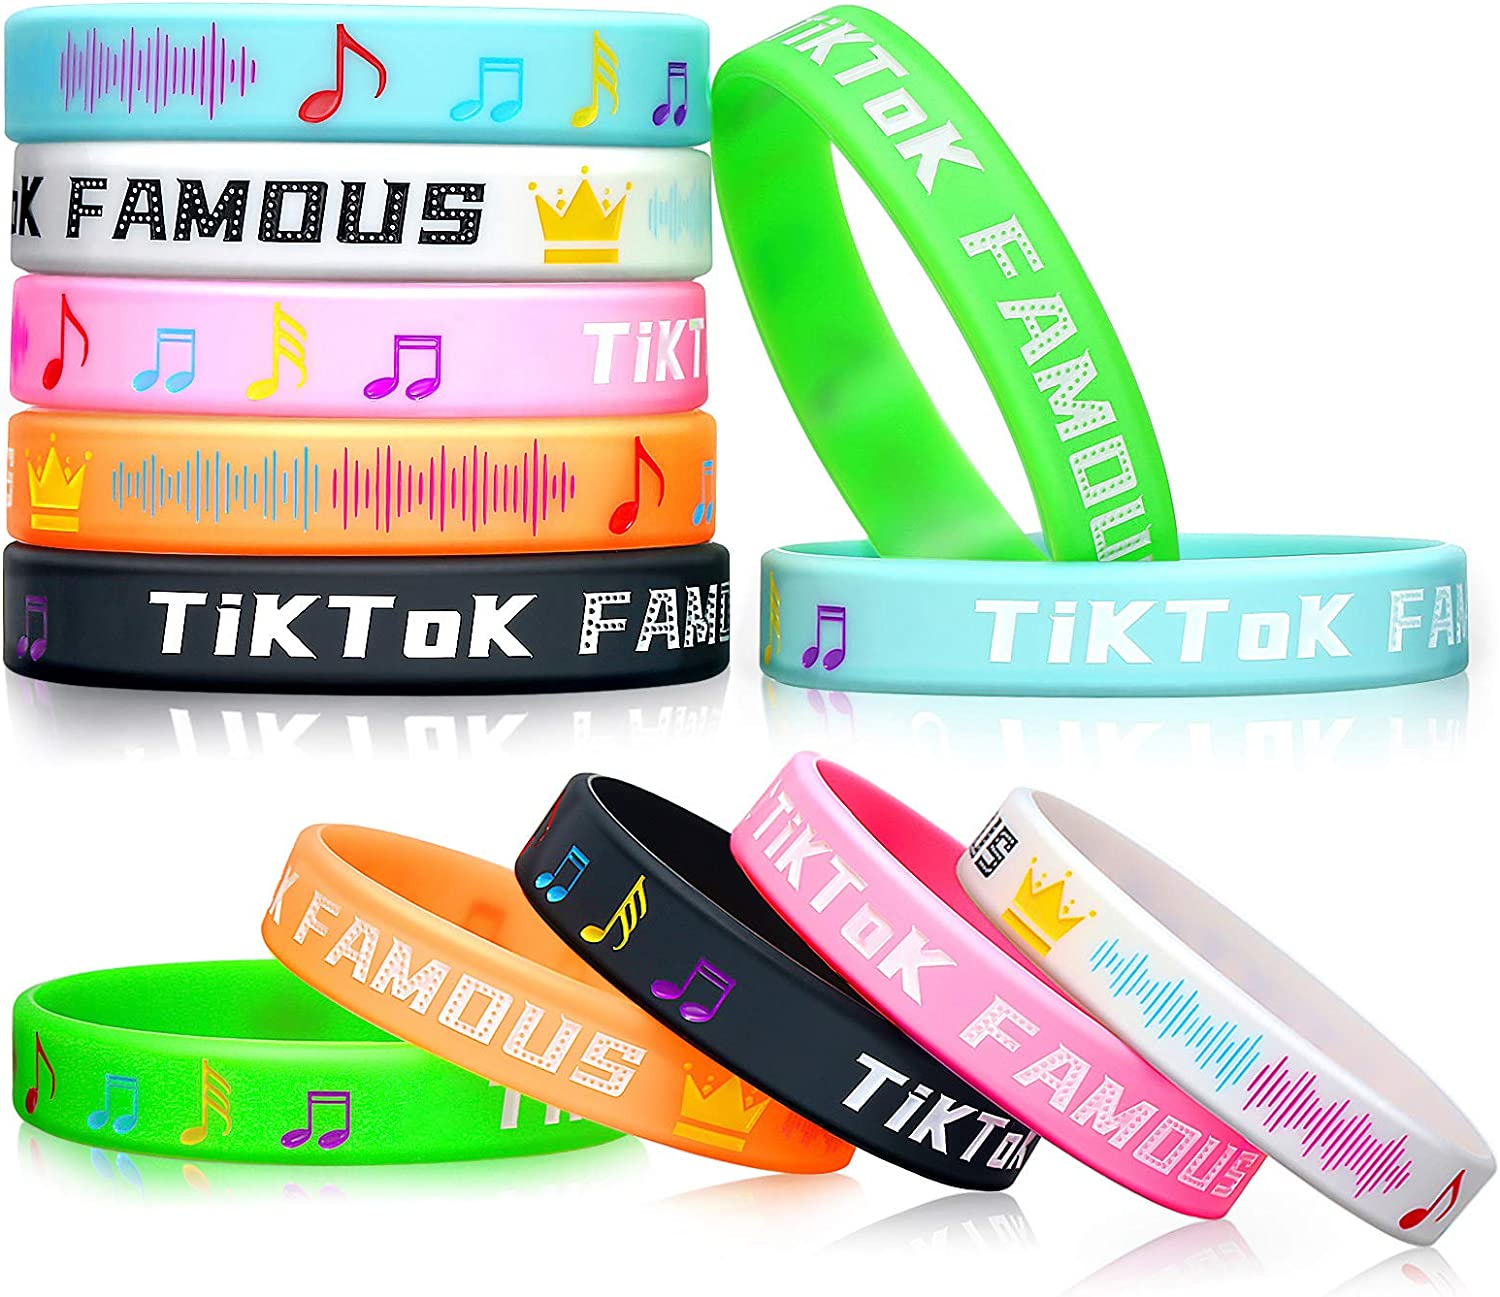 TikTok Themed Birthday Party Supplies Favors Decorations DIY Gifts Set 12 Bracelets 12 Button Pins 50 Stickers for Girls Boys Adults Music Fans Kids 74 Pack